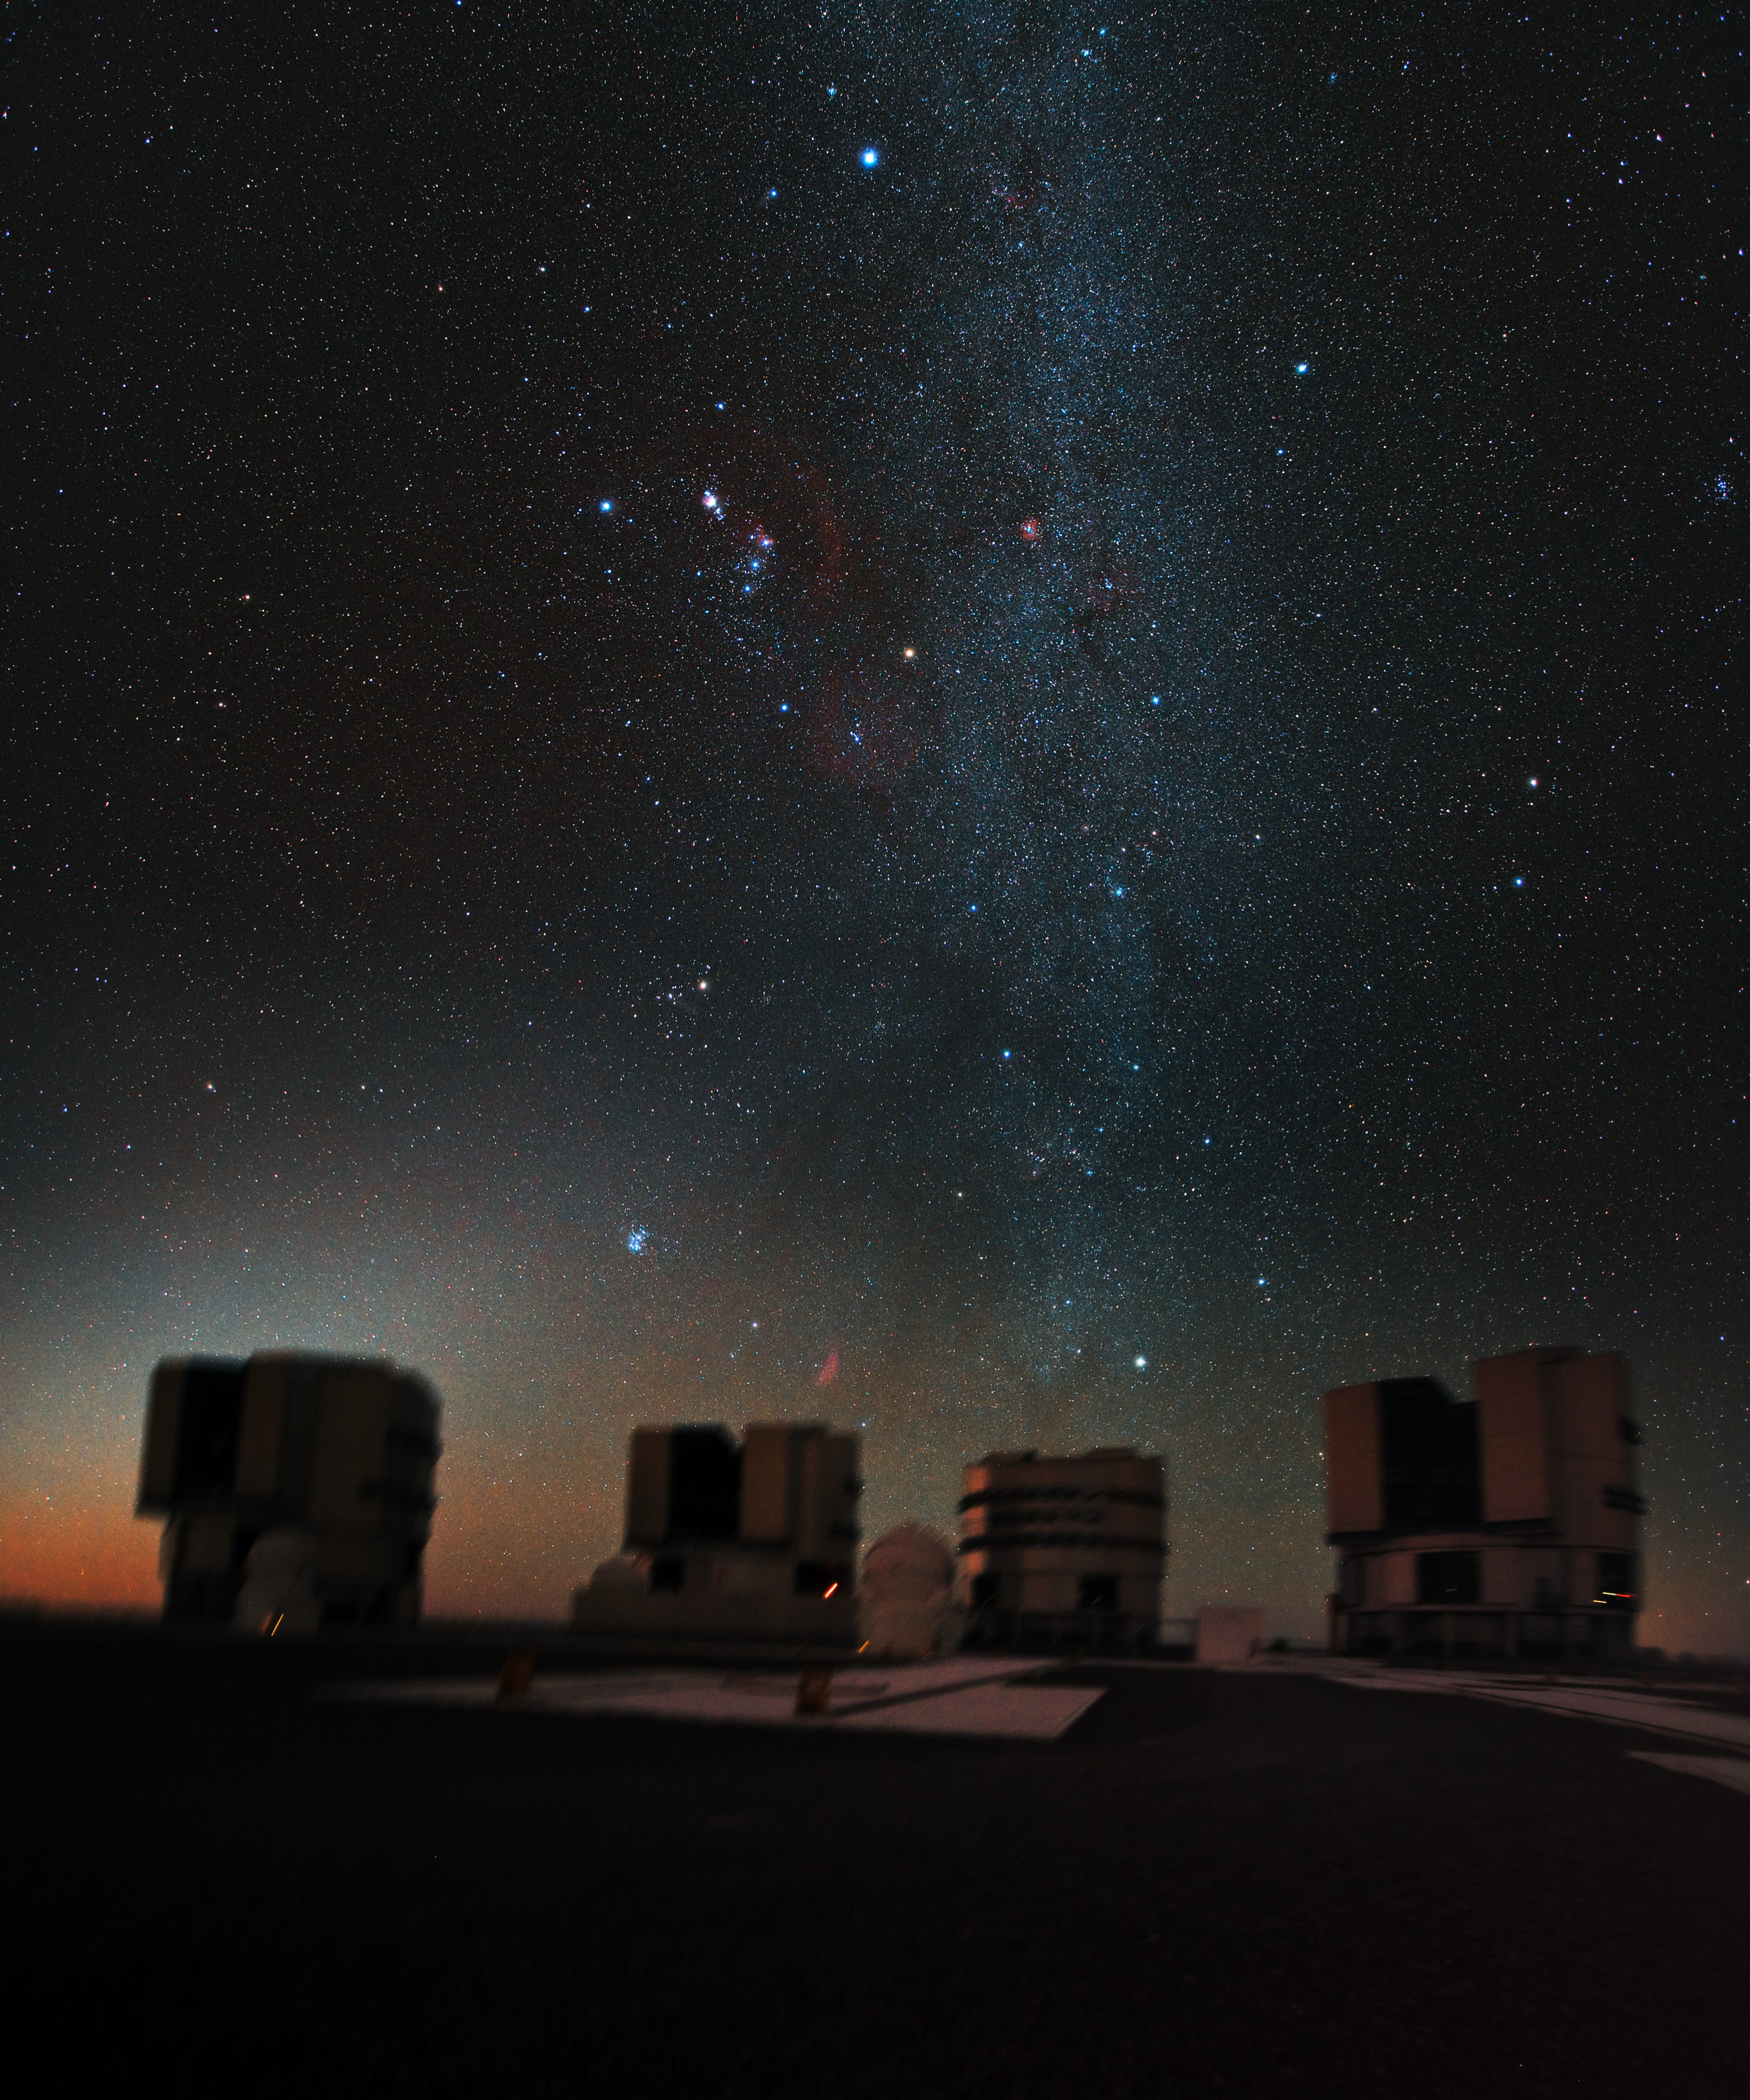 The great hunter Orion hangs above ESO's Very Large Telescope (VLT), in this stunning, previously unseen, image. As the VLT is in the Southern Hemisphere, Orion is seen here head down, as if plunging towards the Chilean Atacama Desert.  Image credit : ESO/ Y. Beletsky